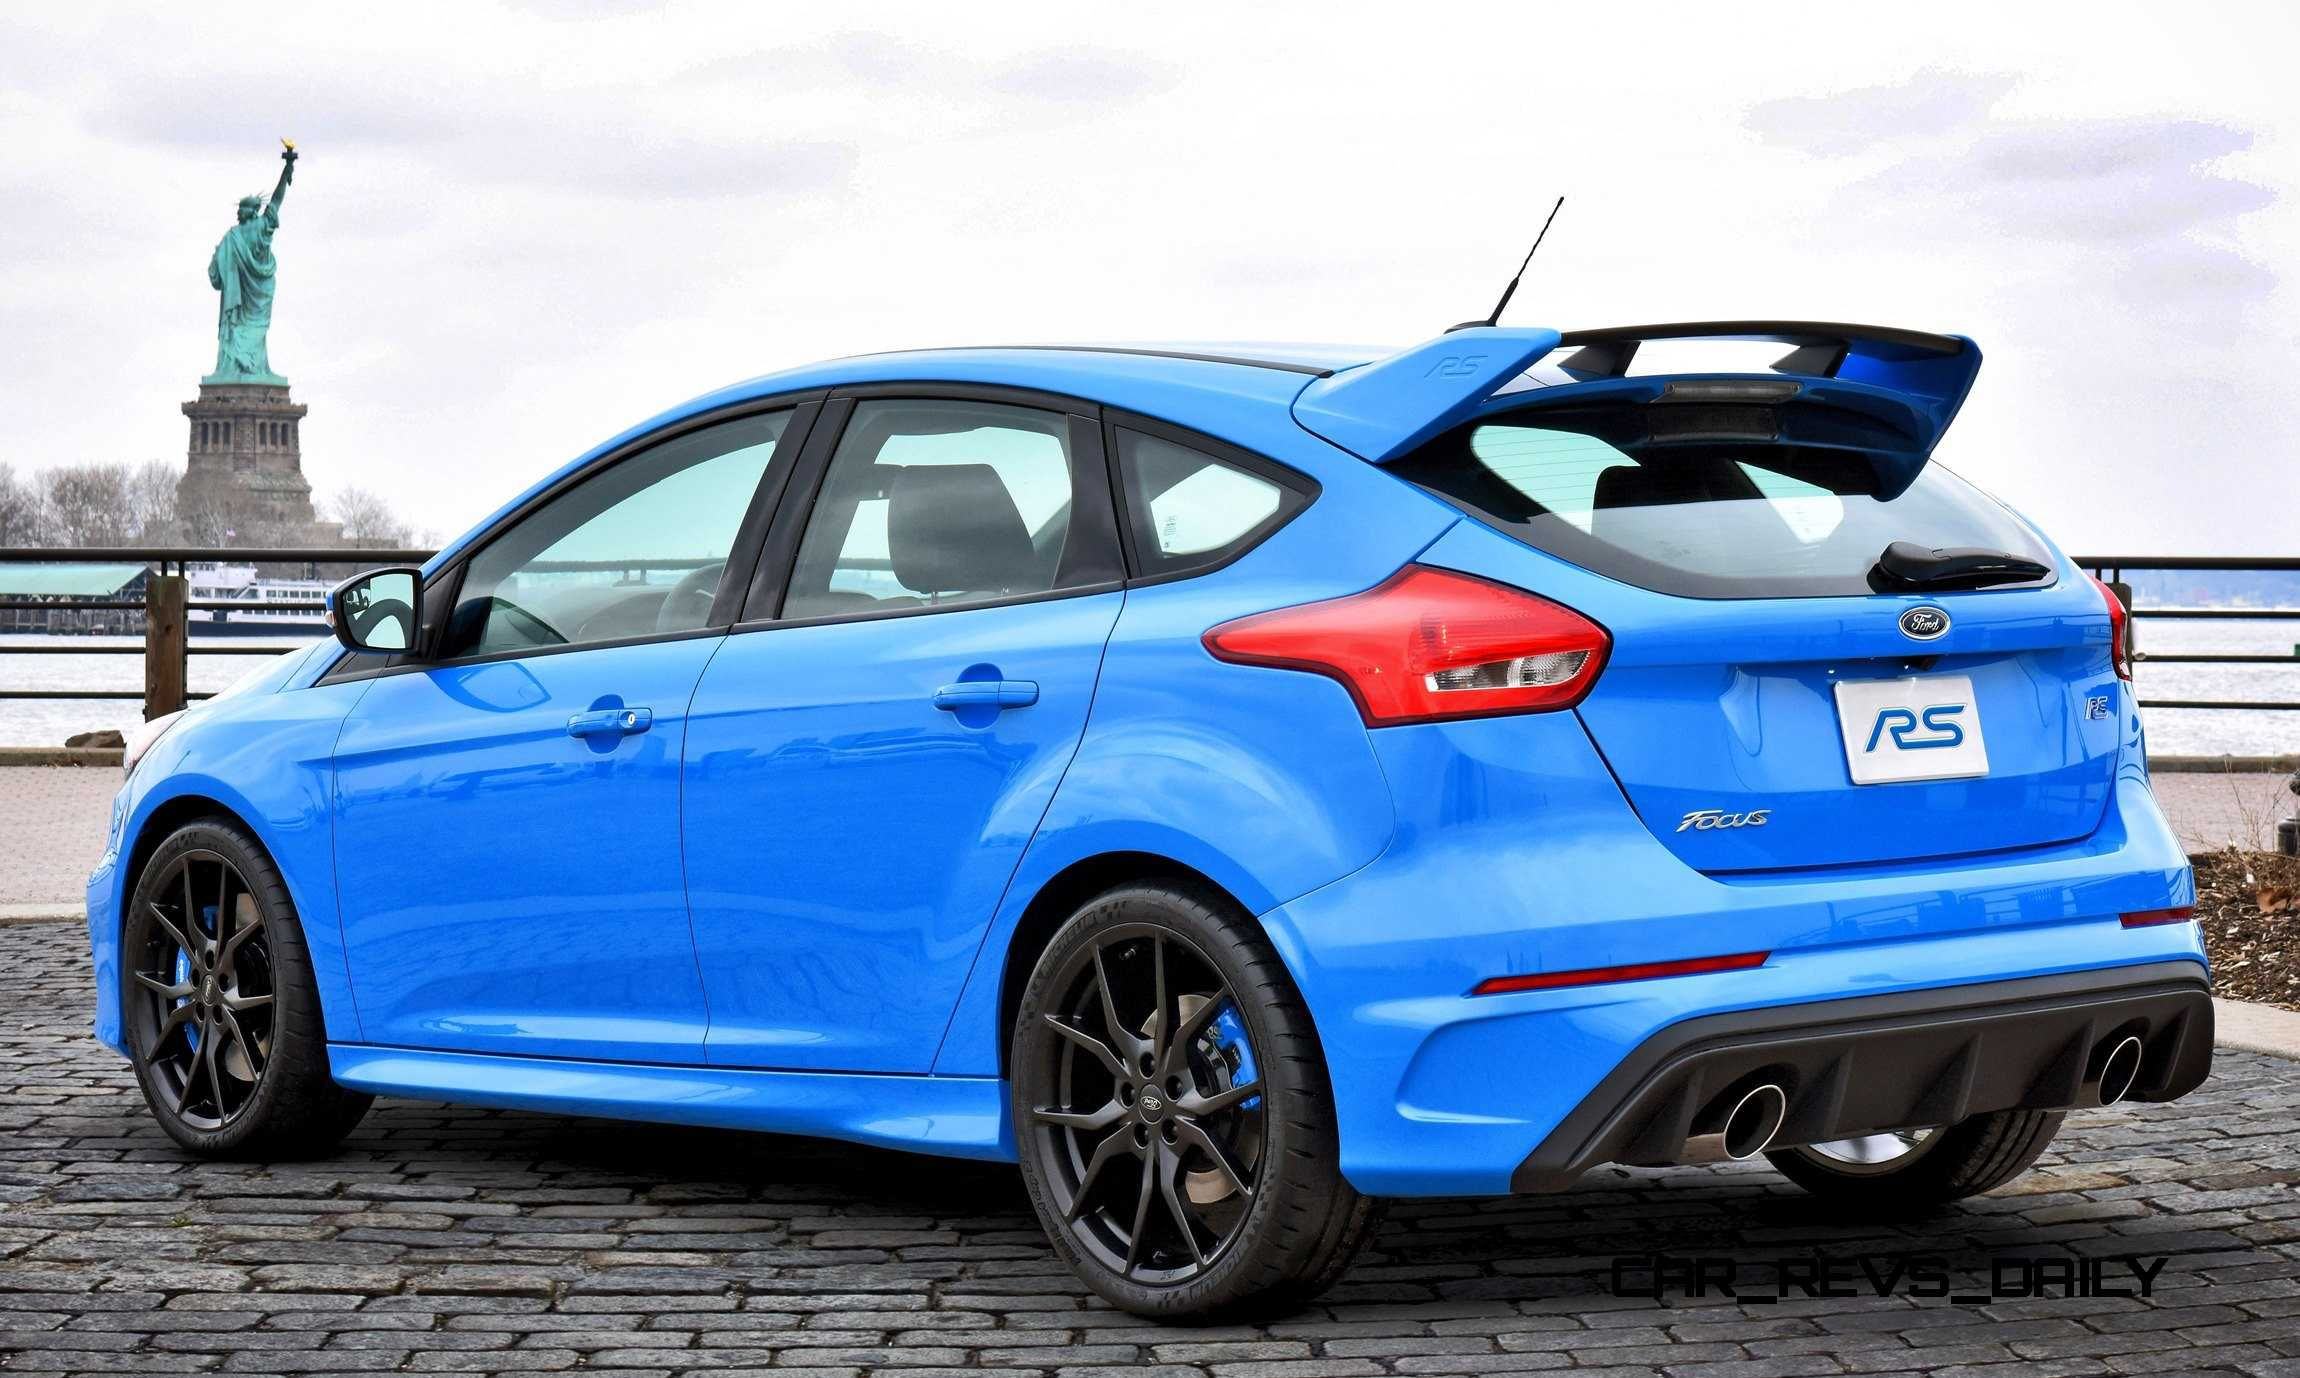 2016 Ford Focus Rs Escapes Auto Show Cage To See Nyc Sights Ford